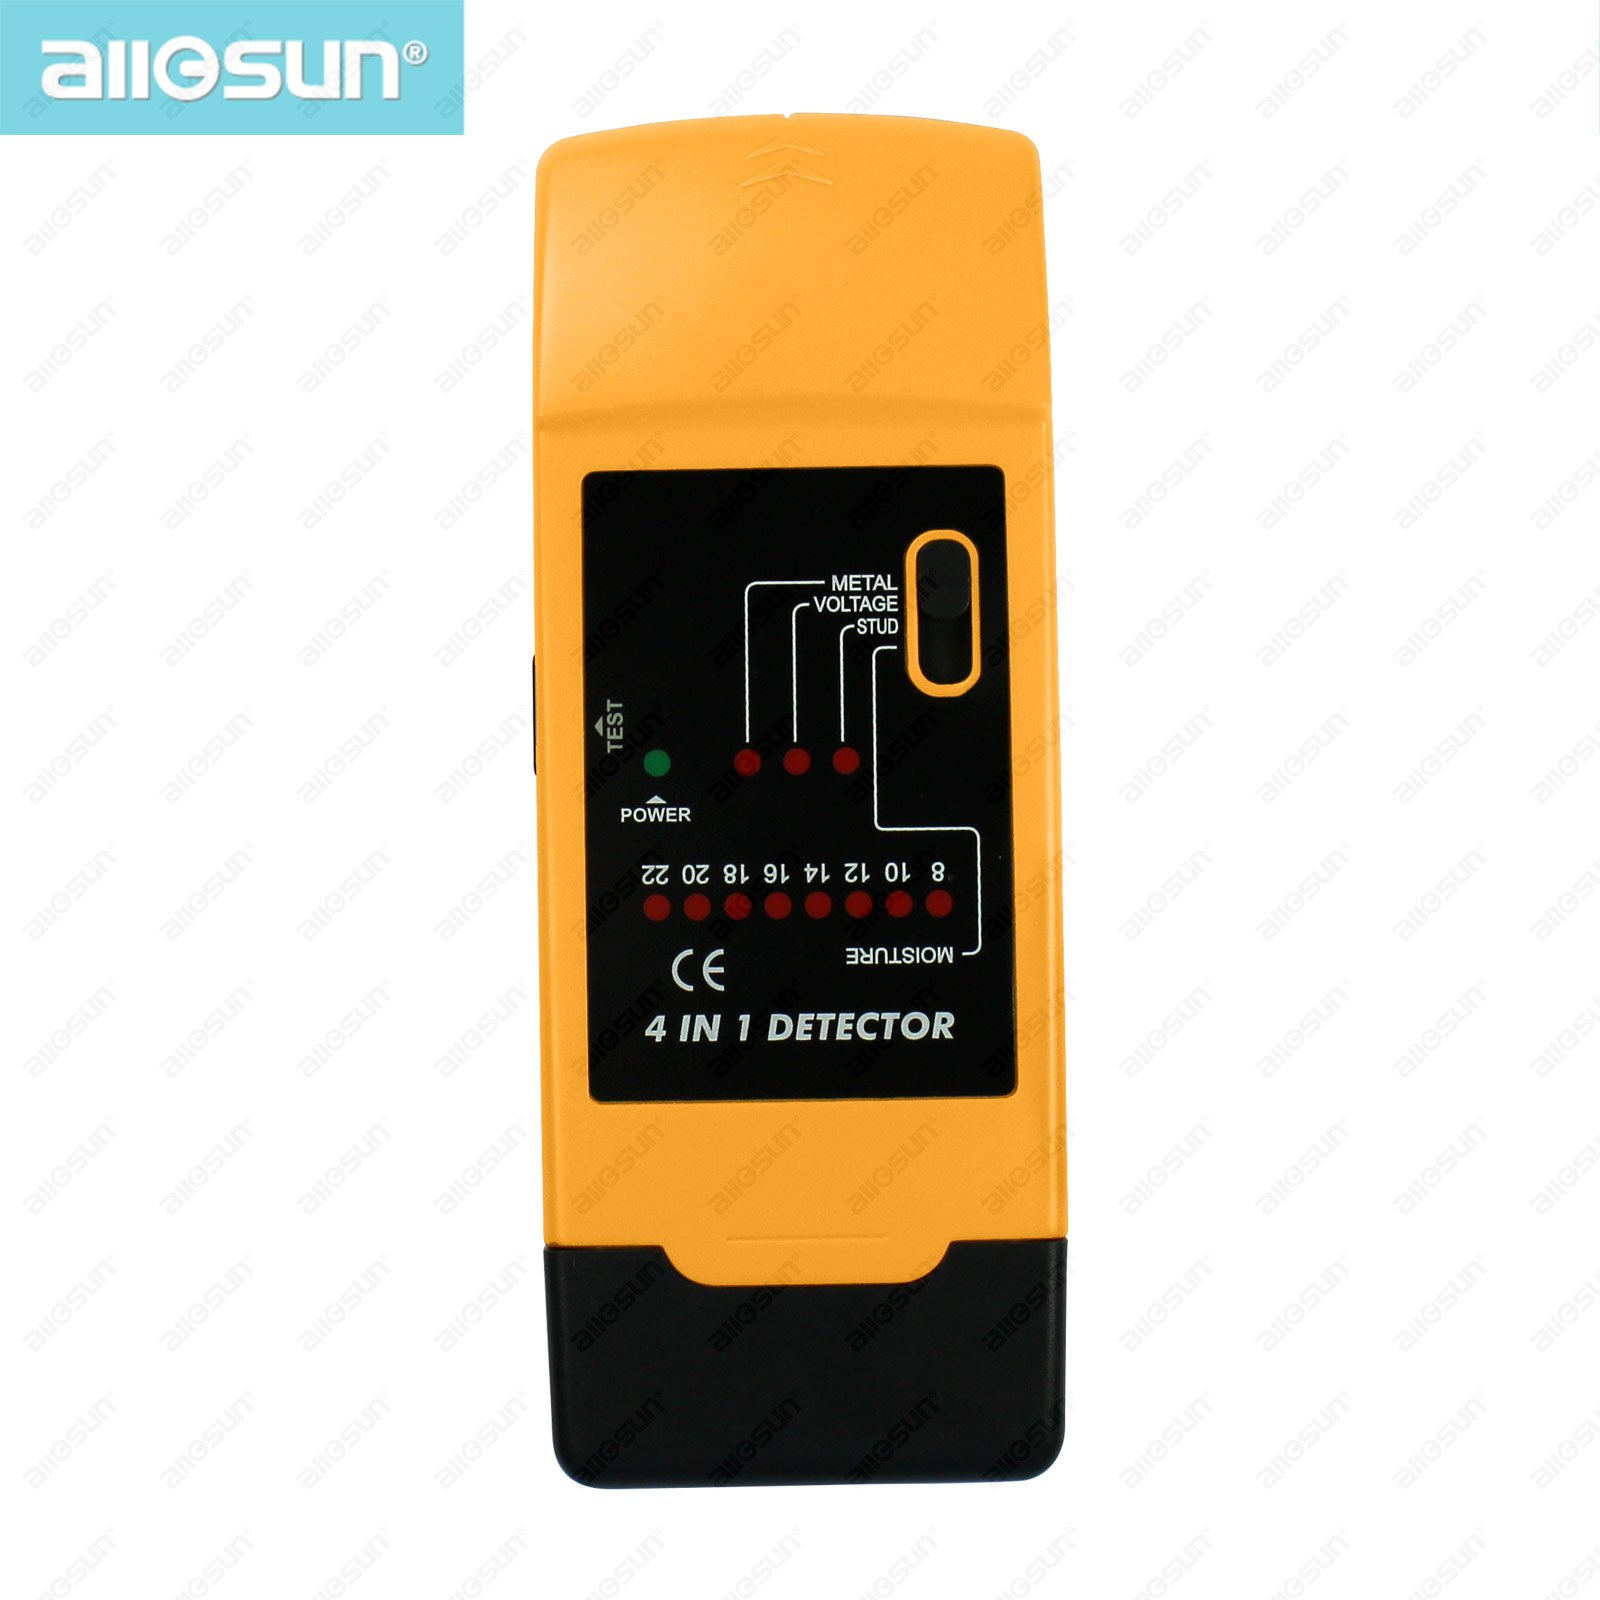 all-sun TS69 4 in 1 AC wires moisture detector bamboo/wood 90-250V at 50-60HZ STUD/METAL Mode moisture tester analyzer 8%-22%